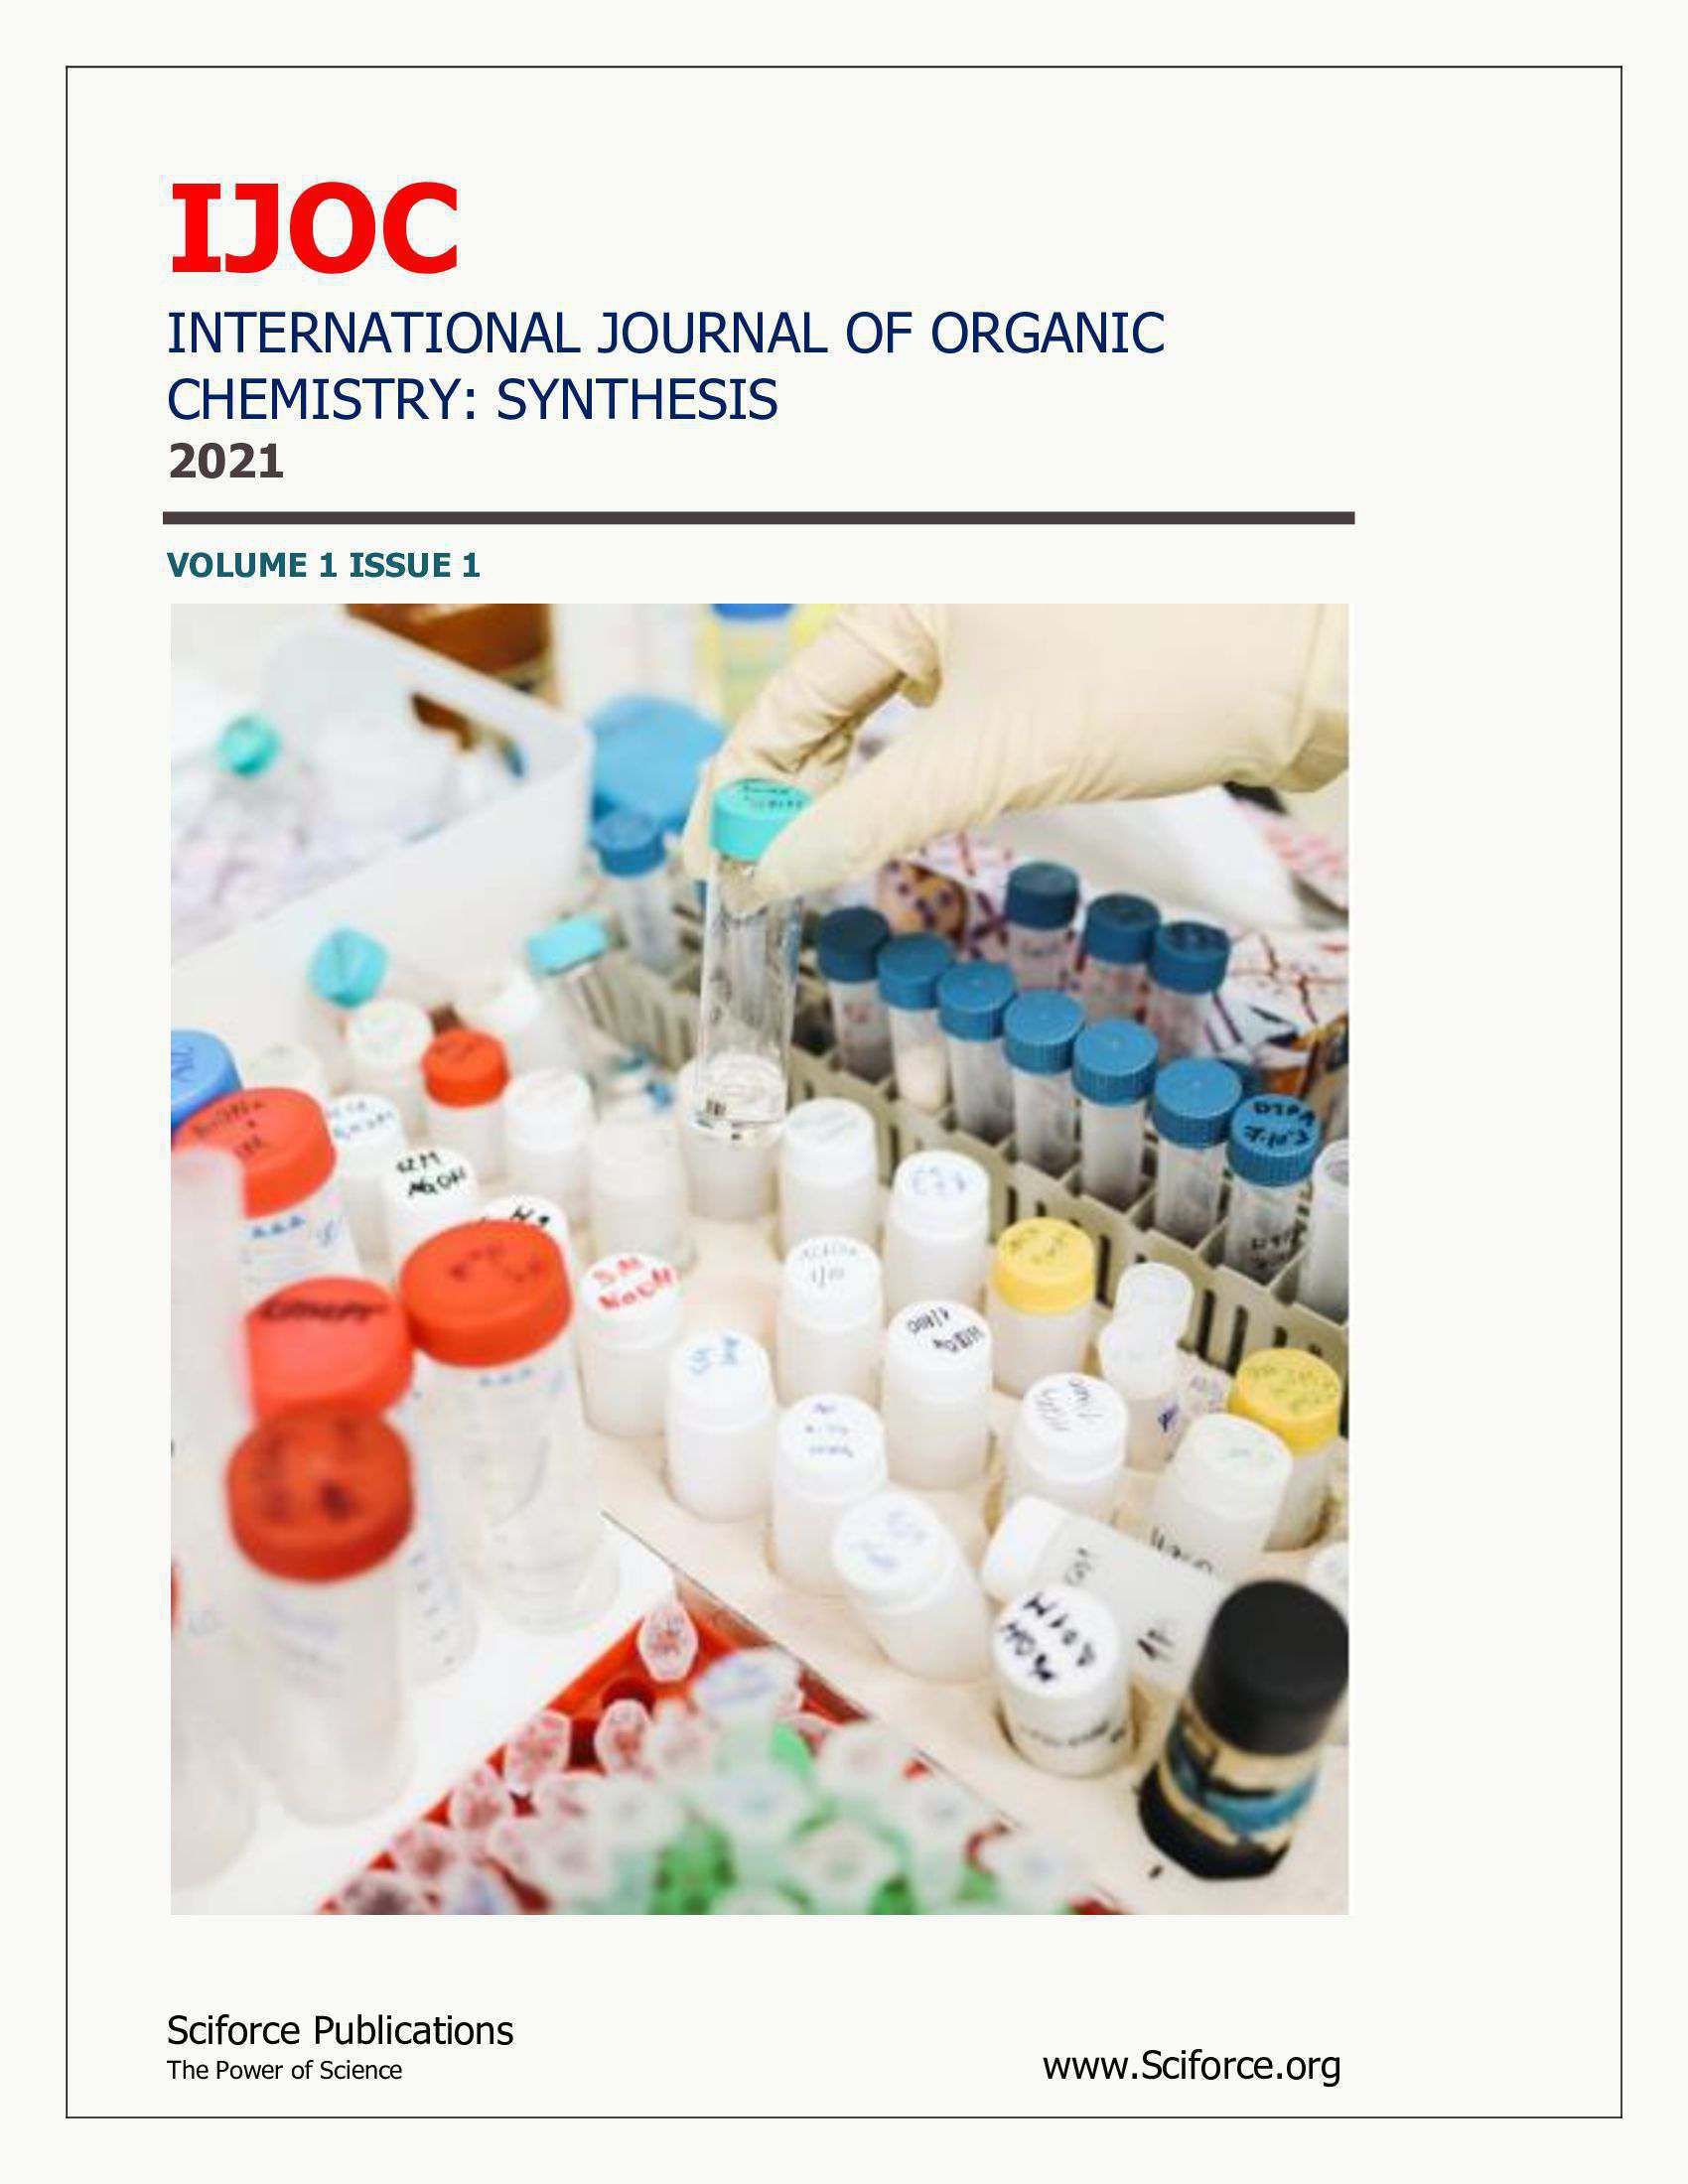 International Journal of Organic Chemistry: Synthesis